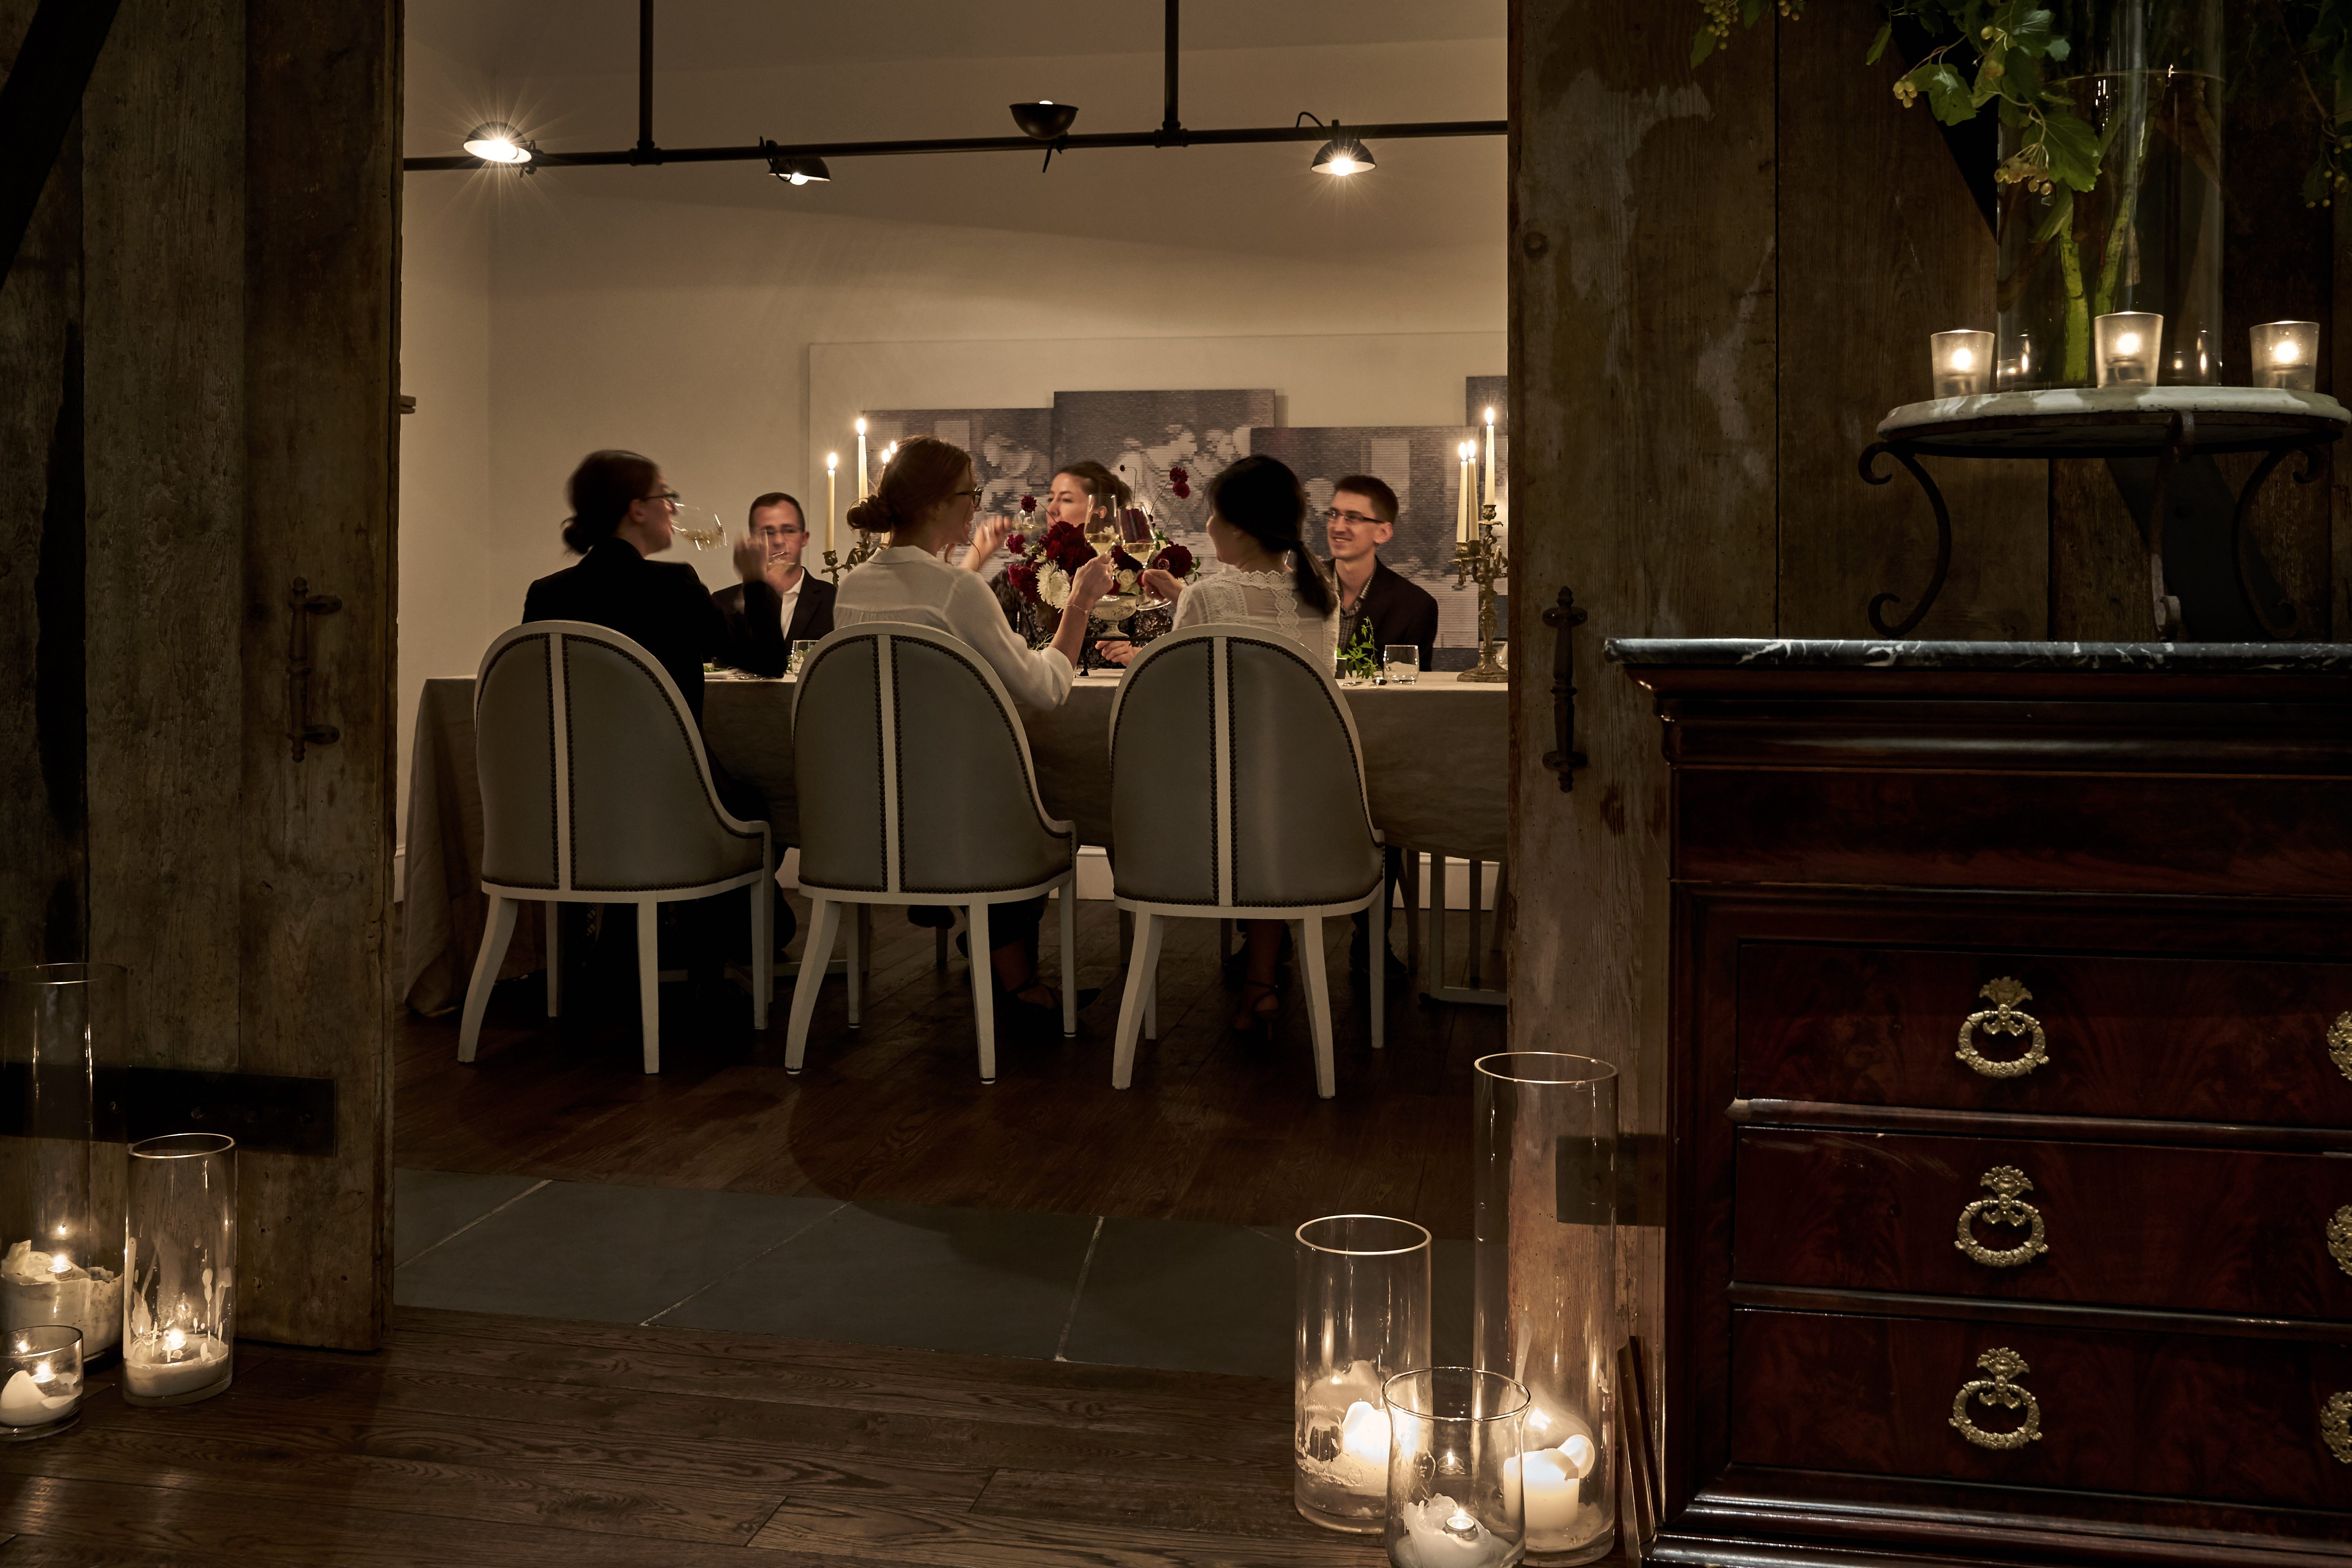 Excellent private dining room dc contemporary best for Best private dining rooms washington dc